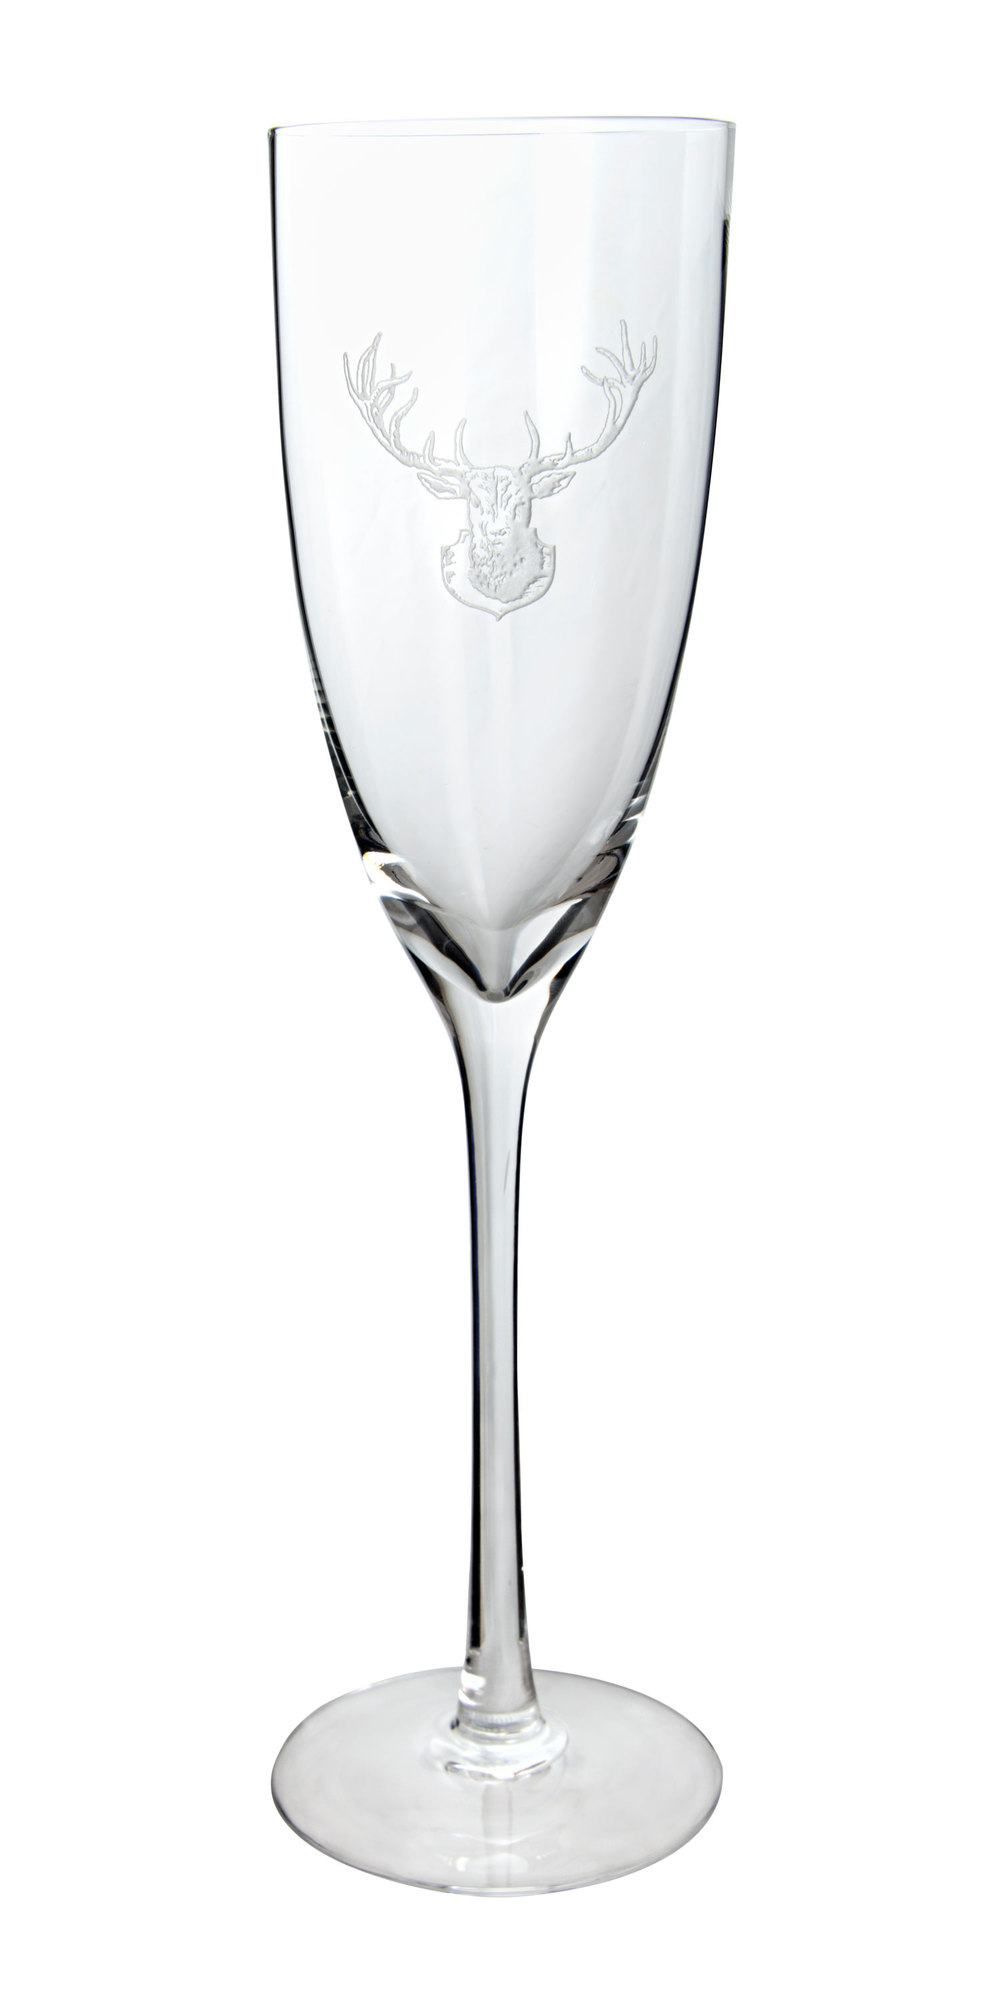 Hand-Etched Crystal Stag Champagne Flute